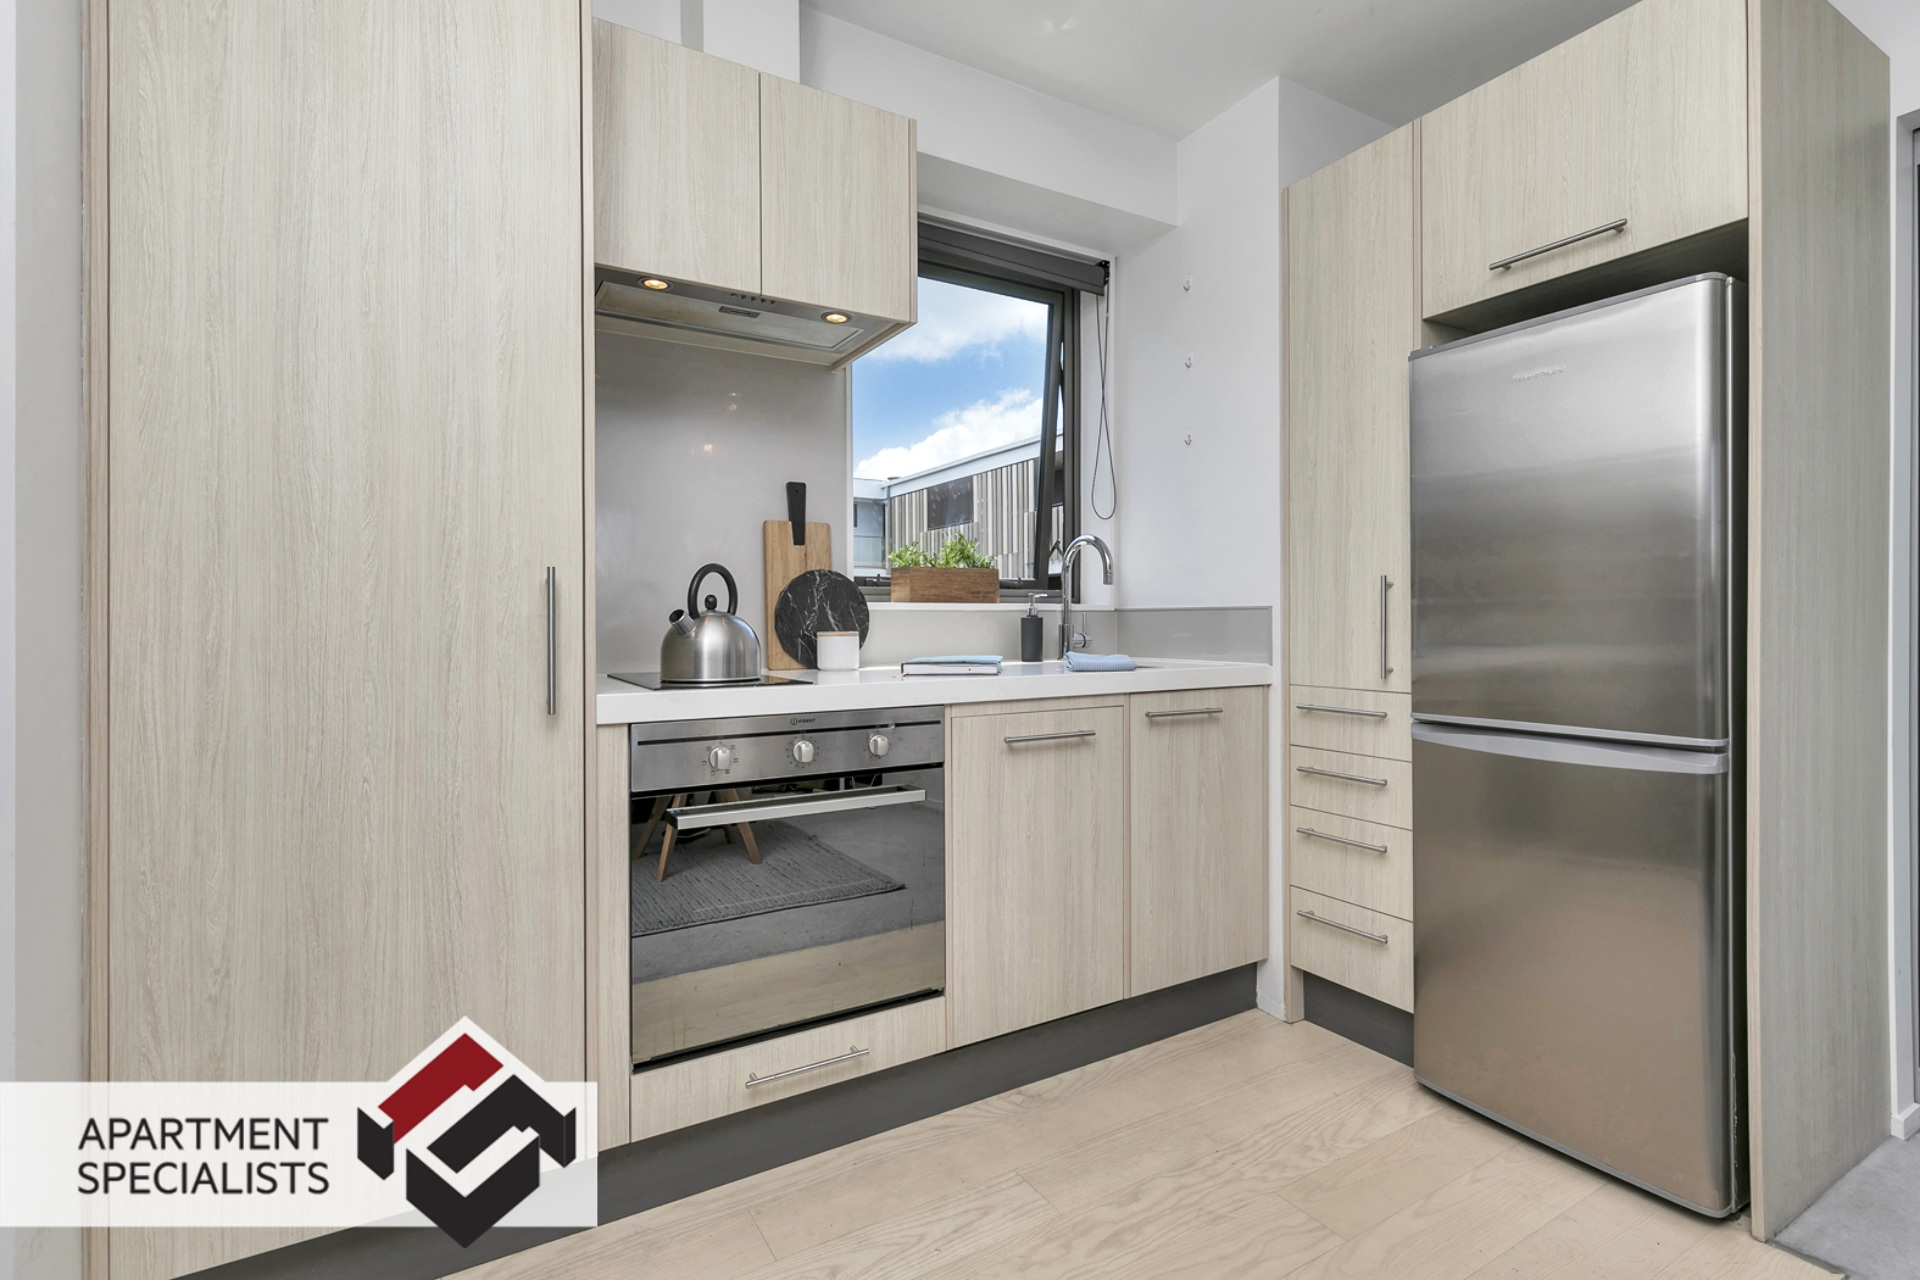 4 | 5 Howe Street, Freemans Bay | Apartment Specialists